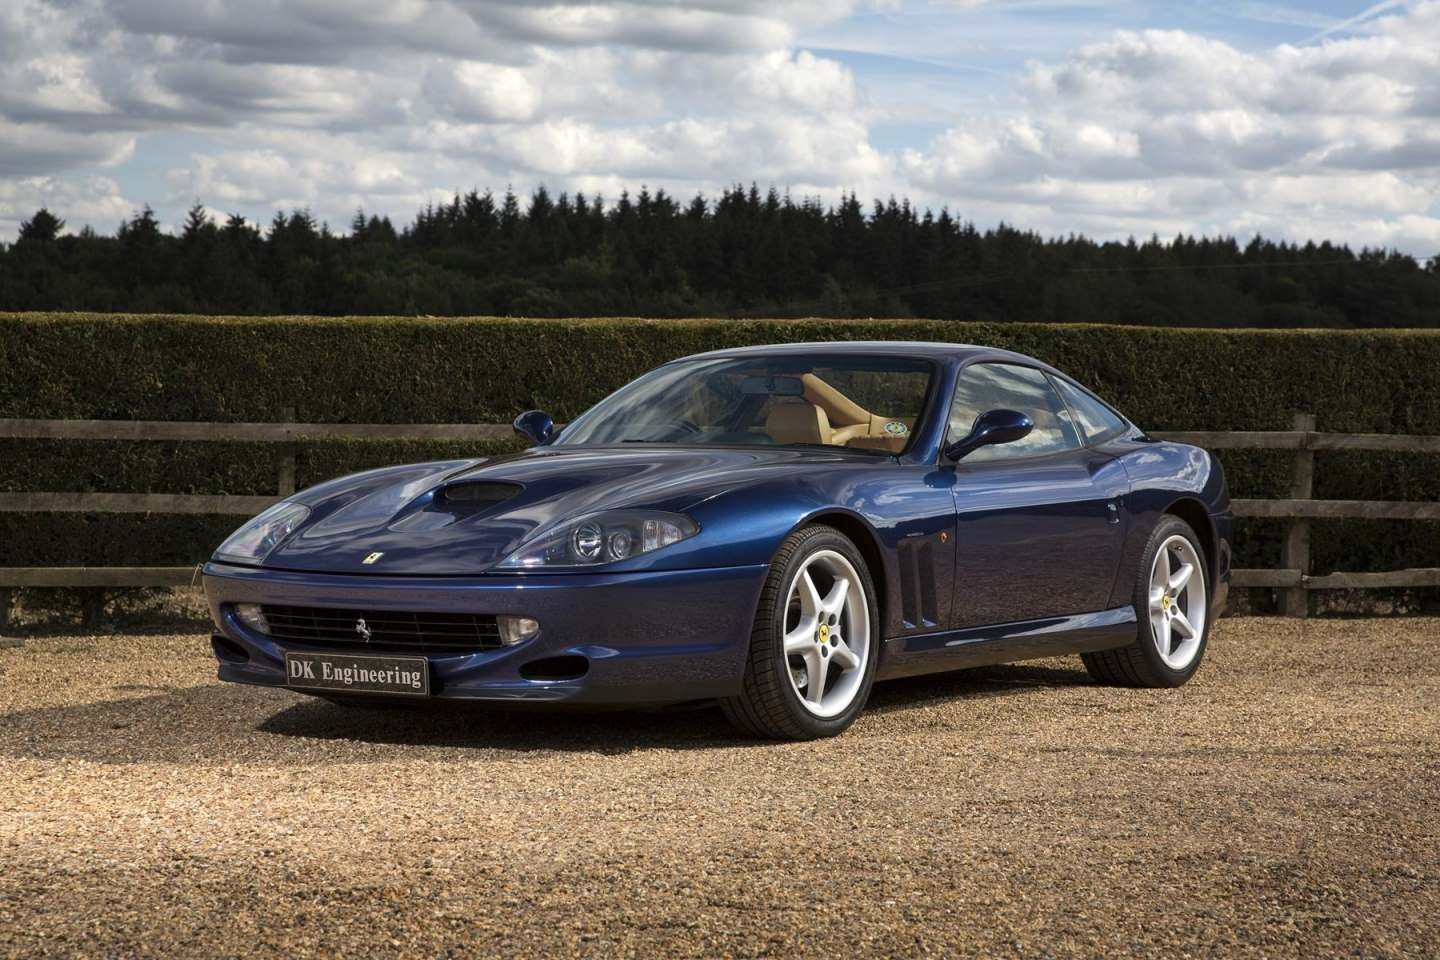 Ferrari 550 Maranello for sale - Vehicle Sales - DK Engineering